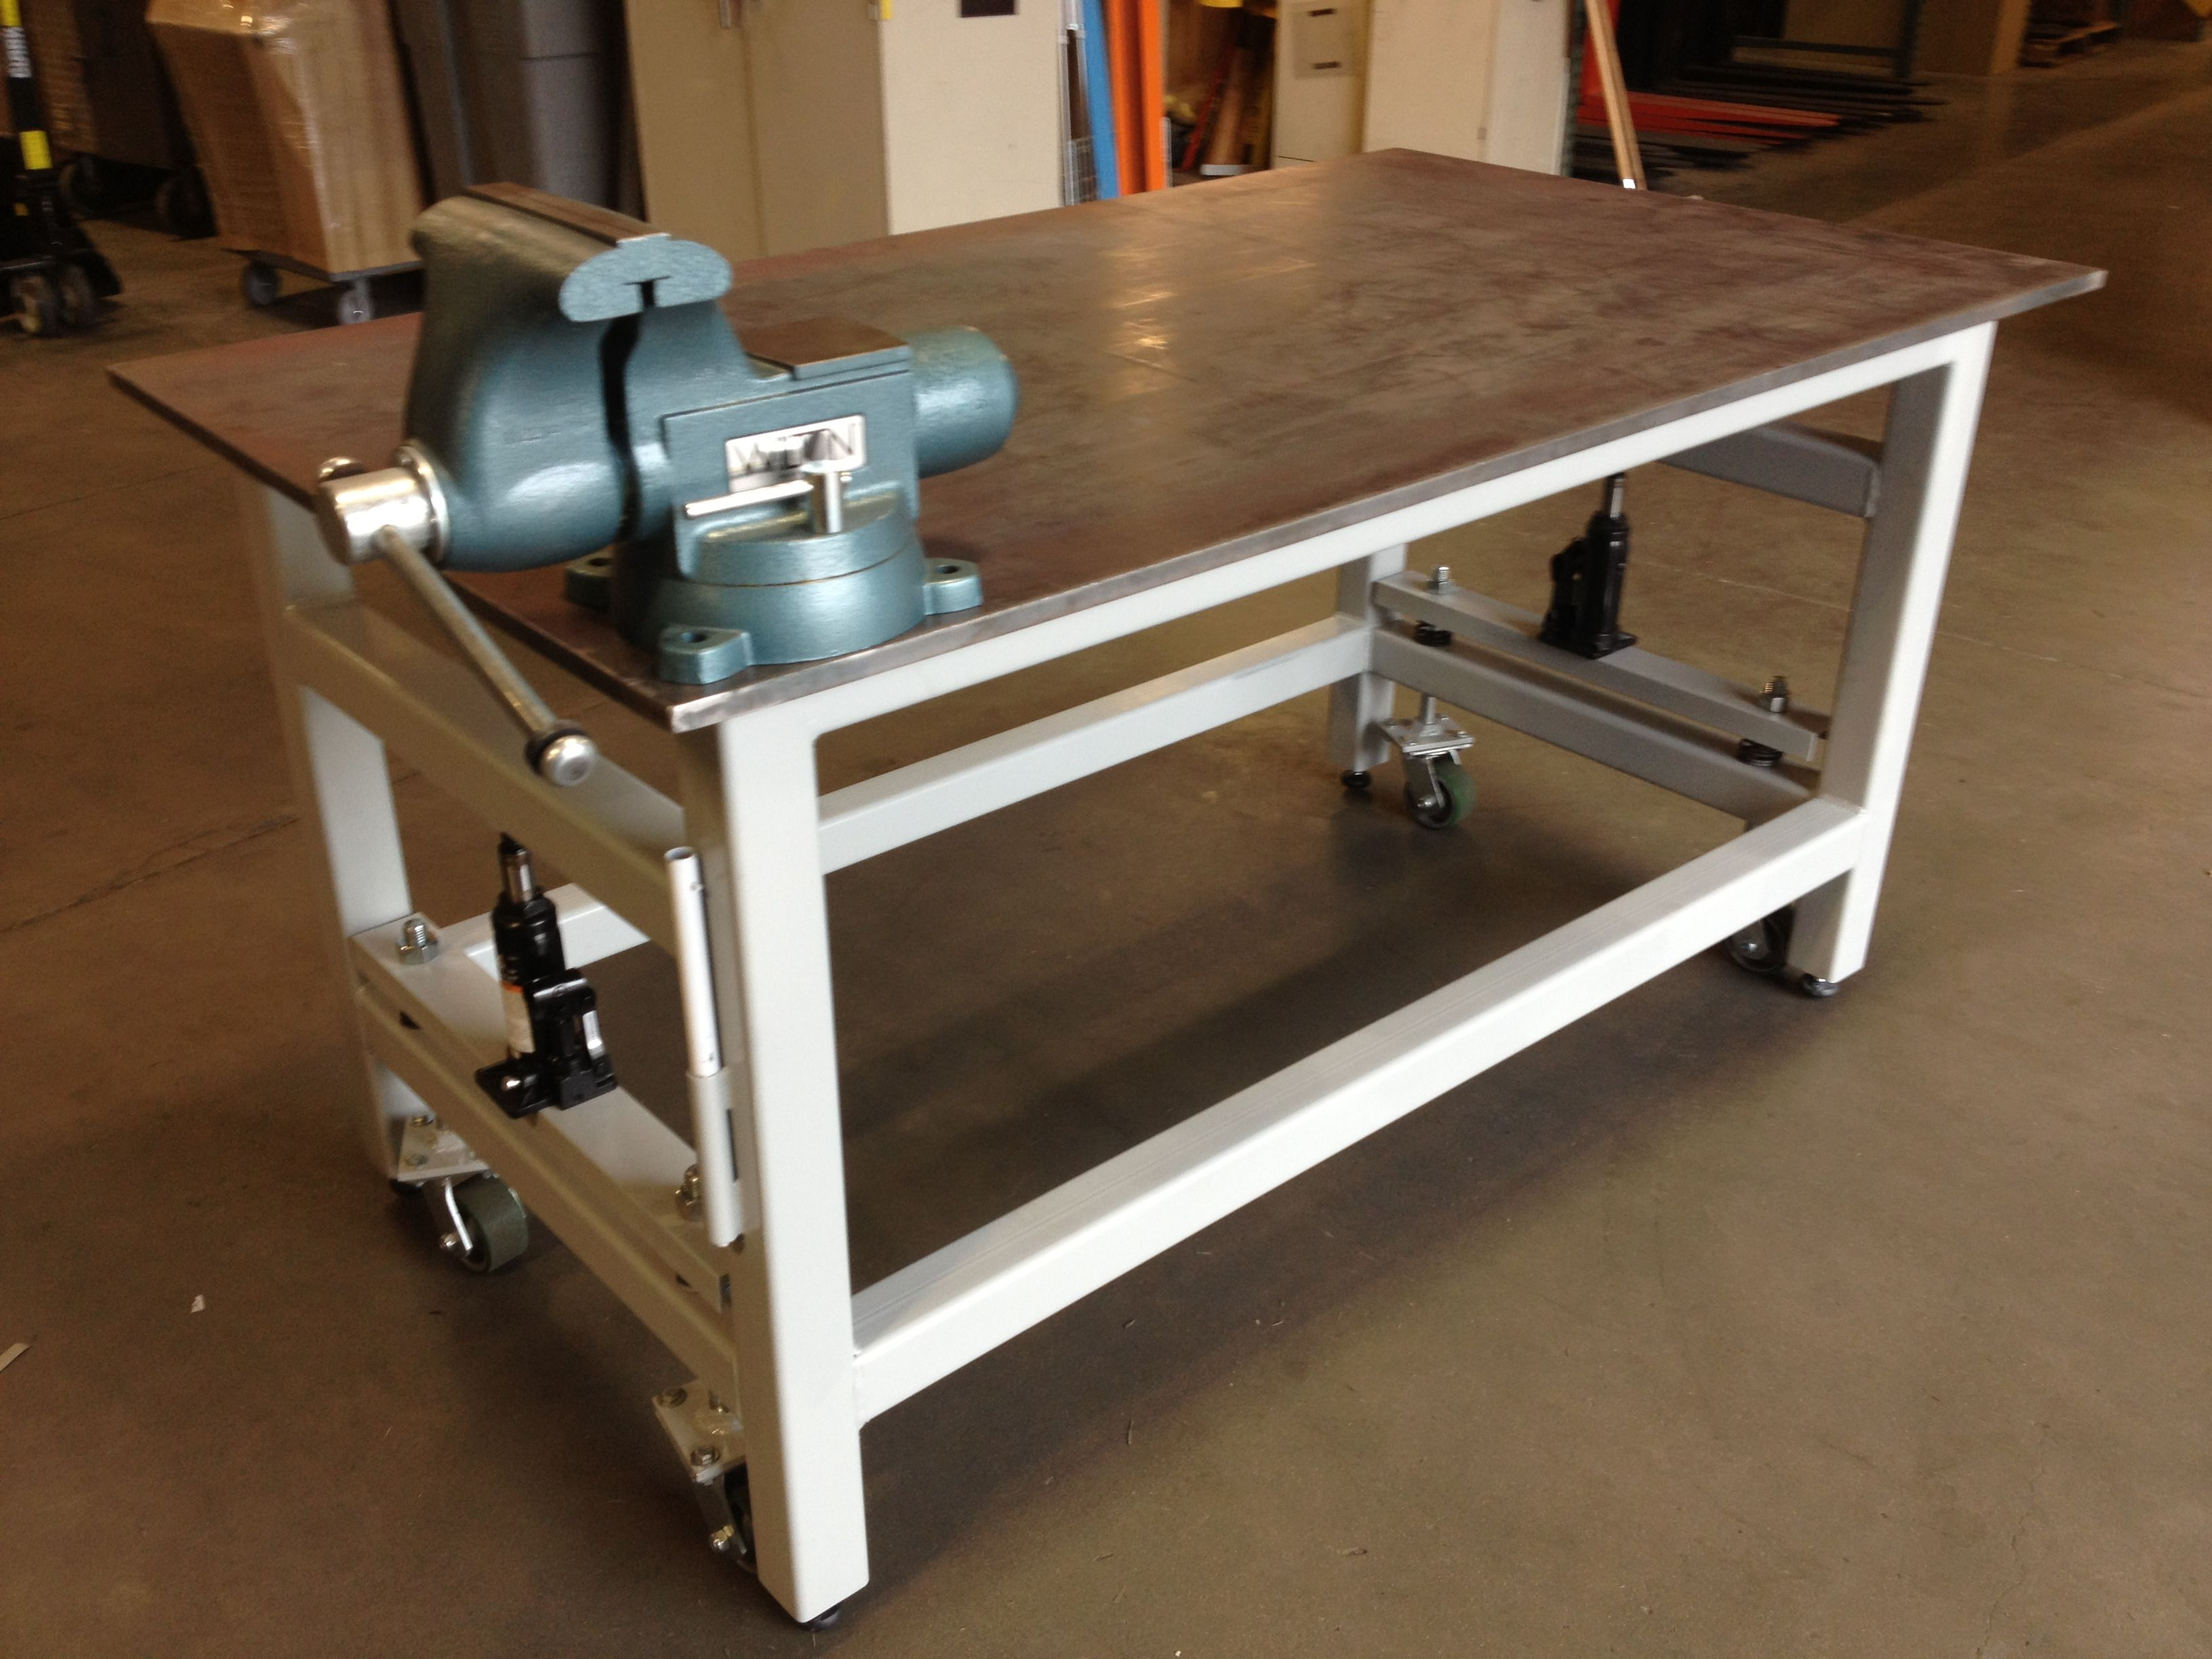 Pin By Matthew Watson On Things To Make Pinterest Garage Wiring My Plasma Cutter The Journal Board Heavy Duty Work Bench Plans Gathered Their Links Hand And This Con Struction Also Means That Building Plank Top Workbench Plan See